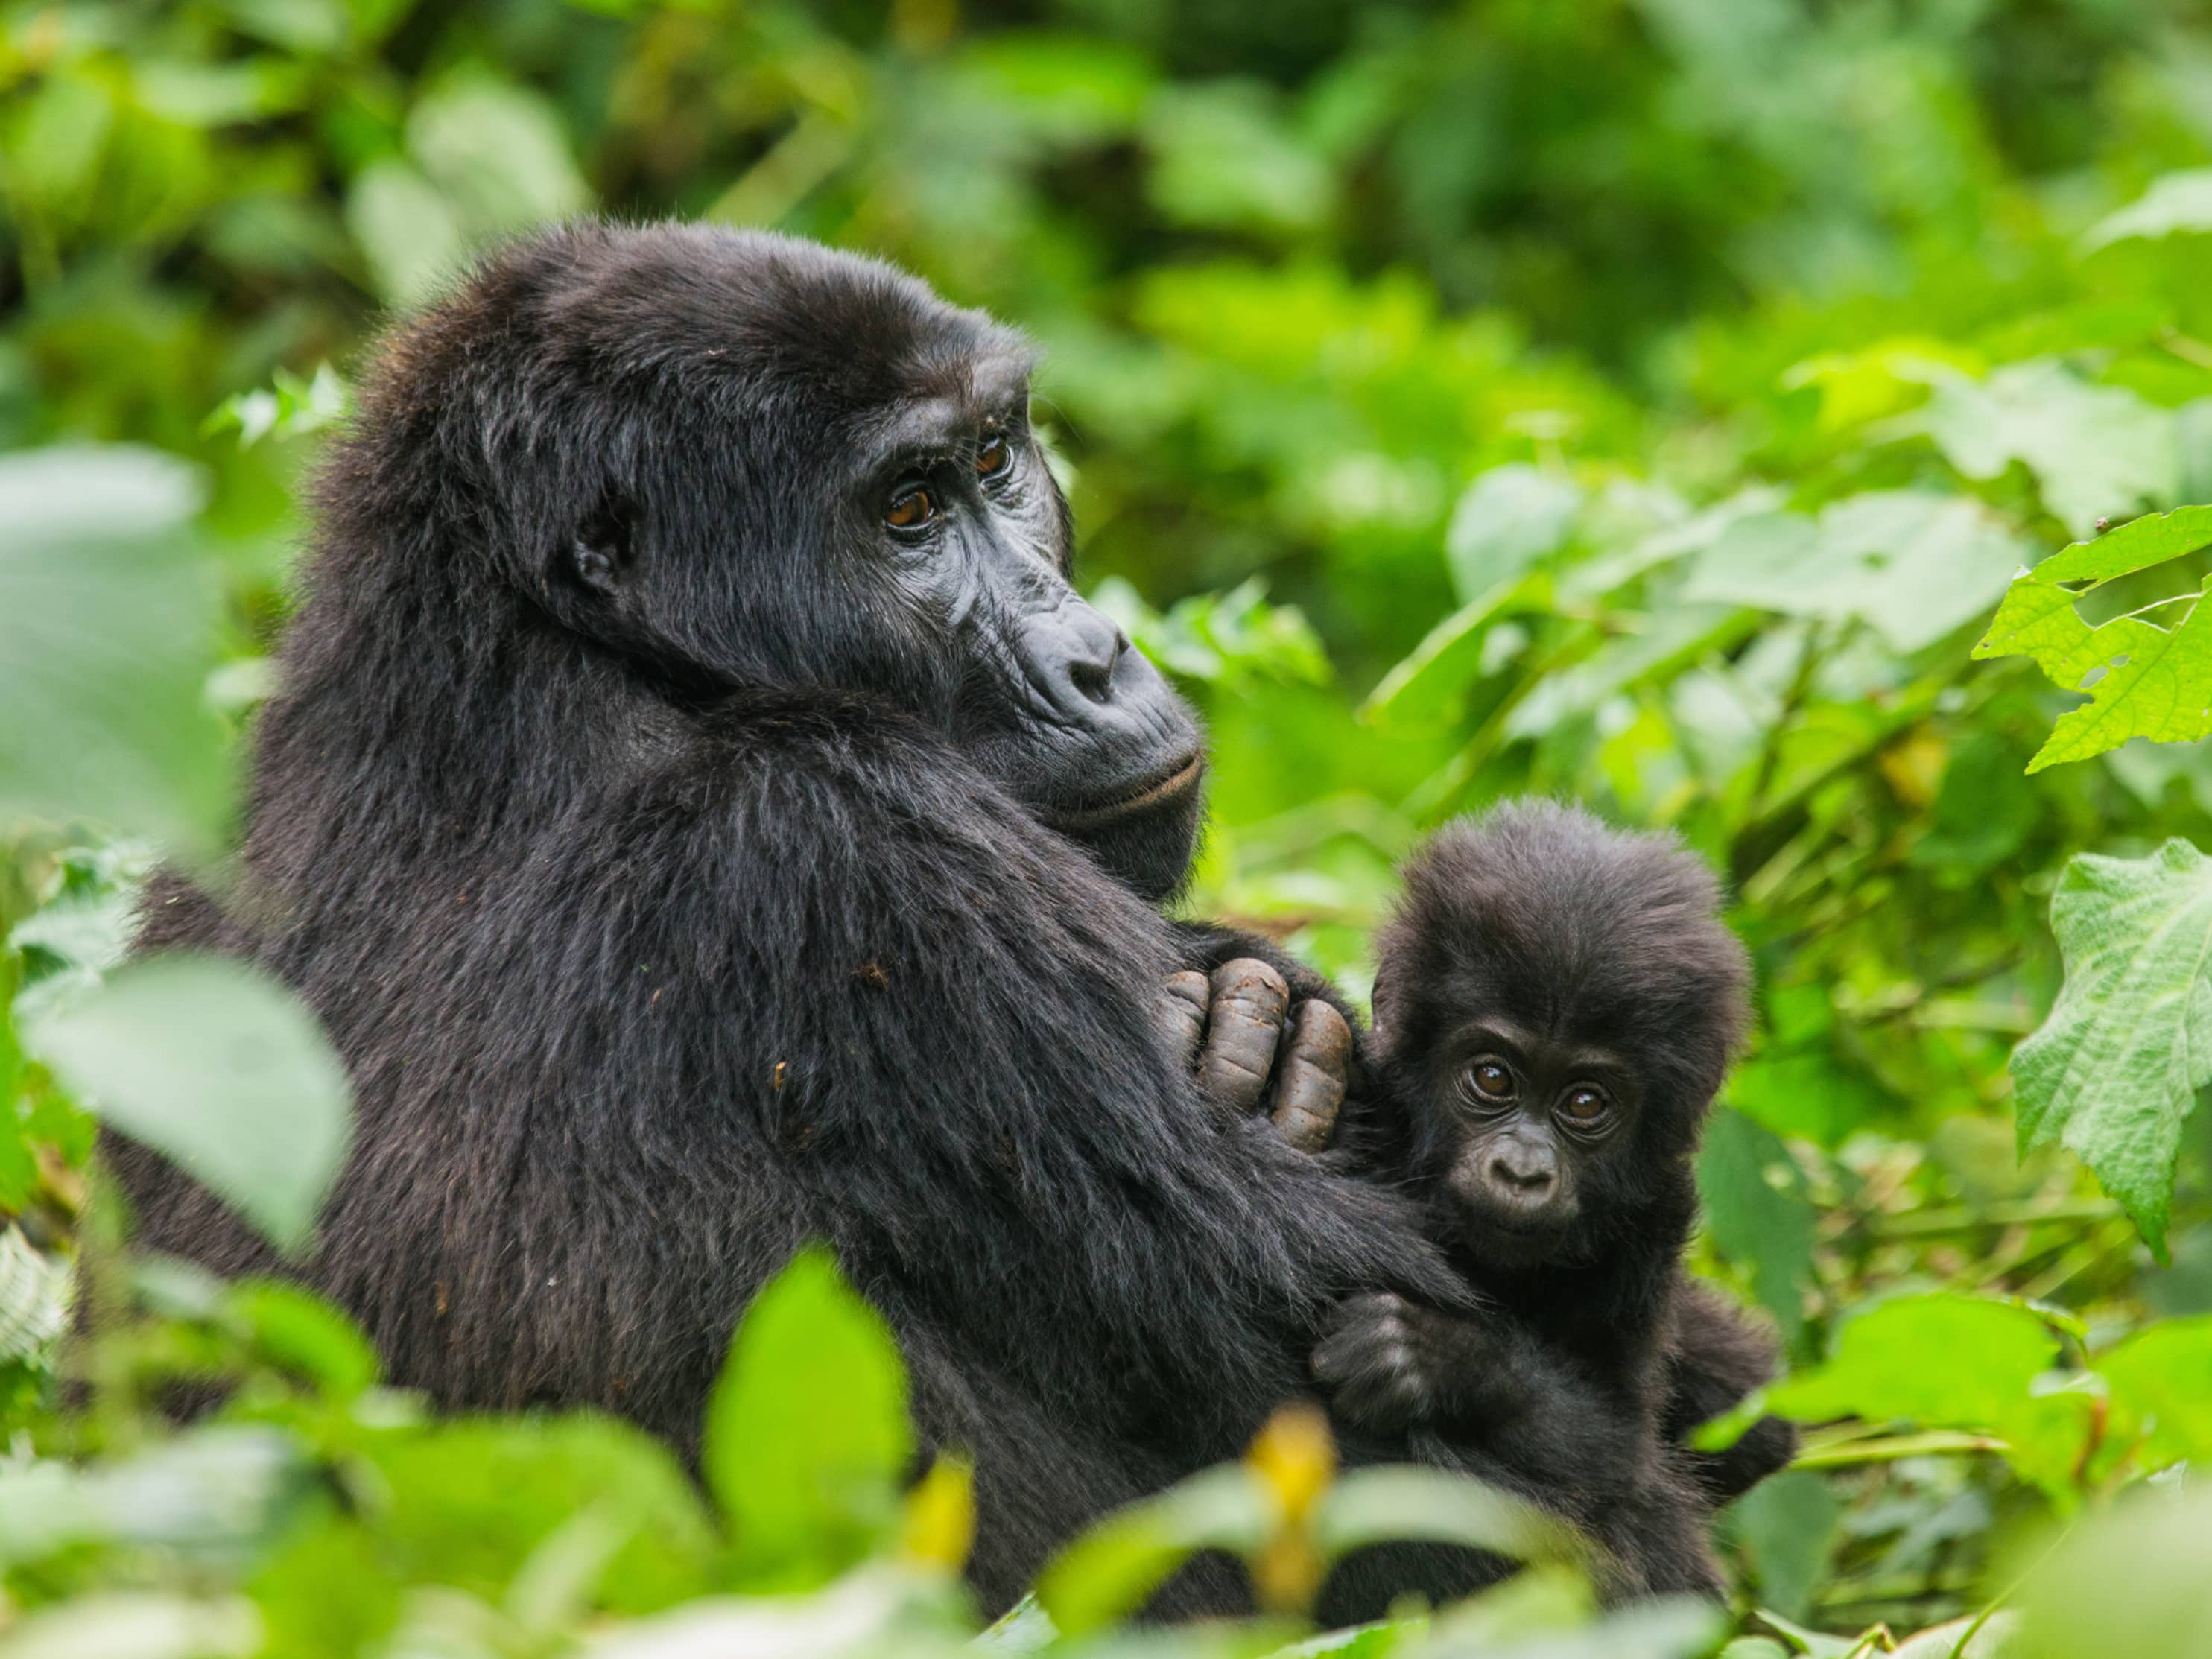 See Mountain Gorillas Up Close in the Wild